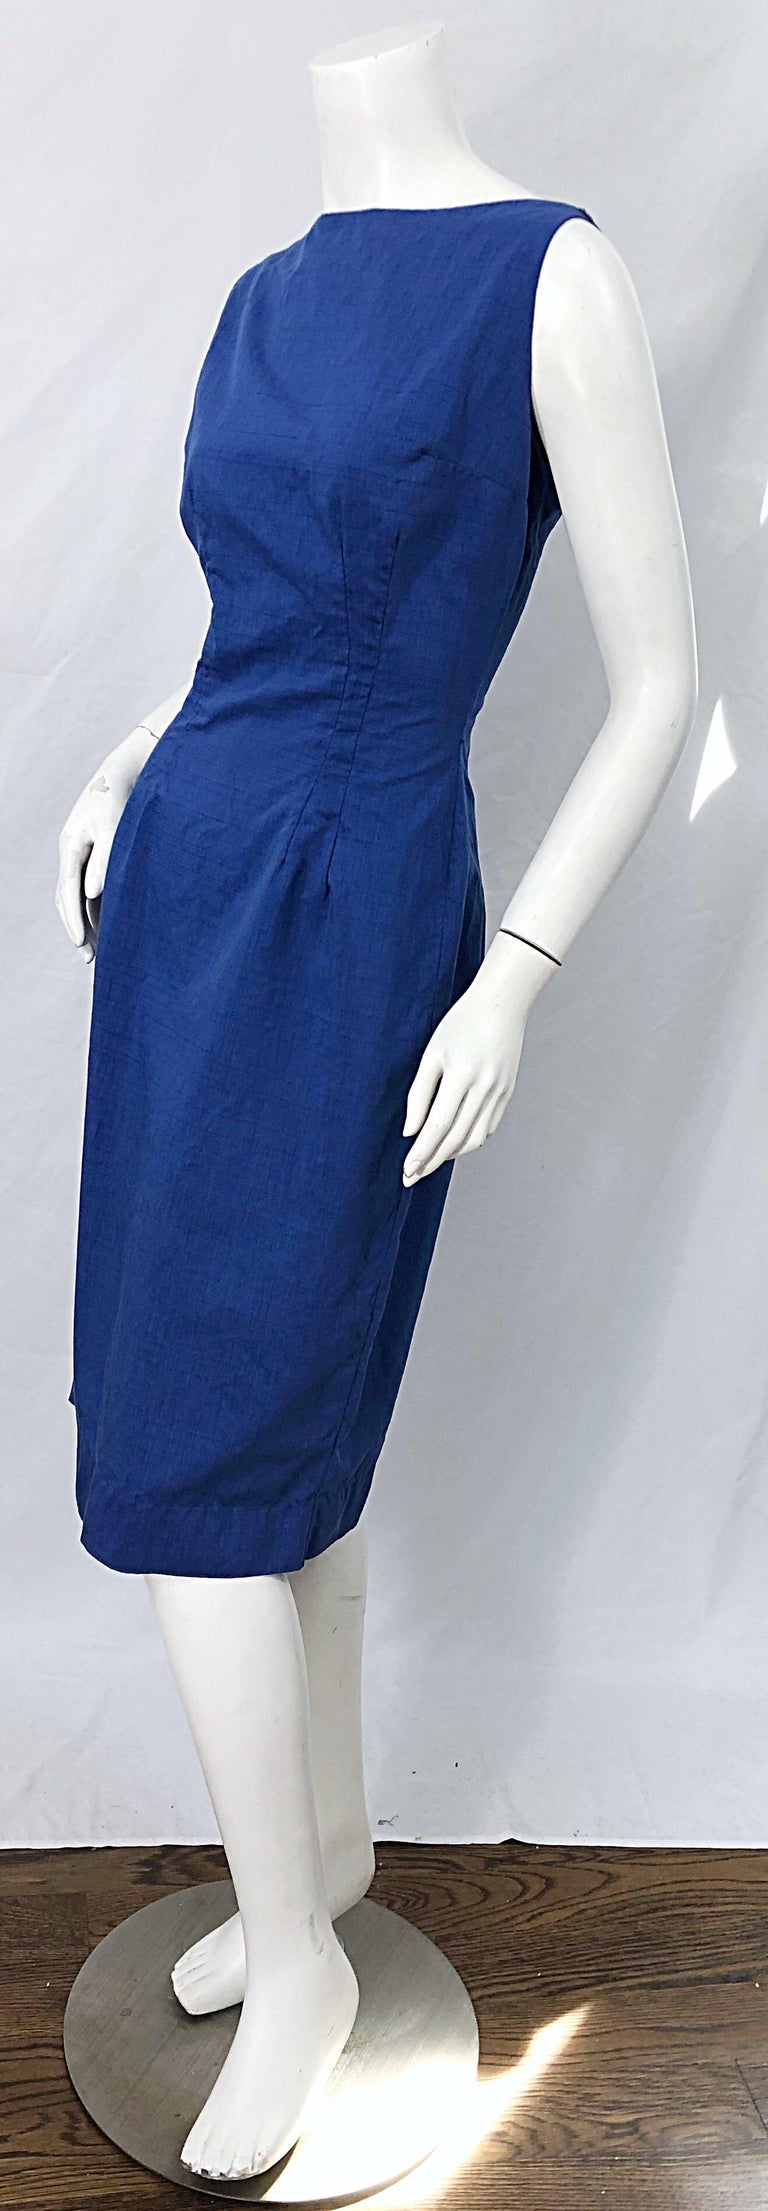 Women's Chic 1950s Cobalt Blue Cotton High Neck Vintage 50s Sleeveless Wiggle Dress For Sale